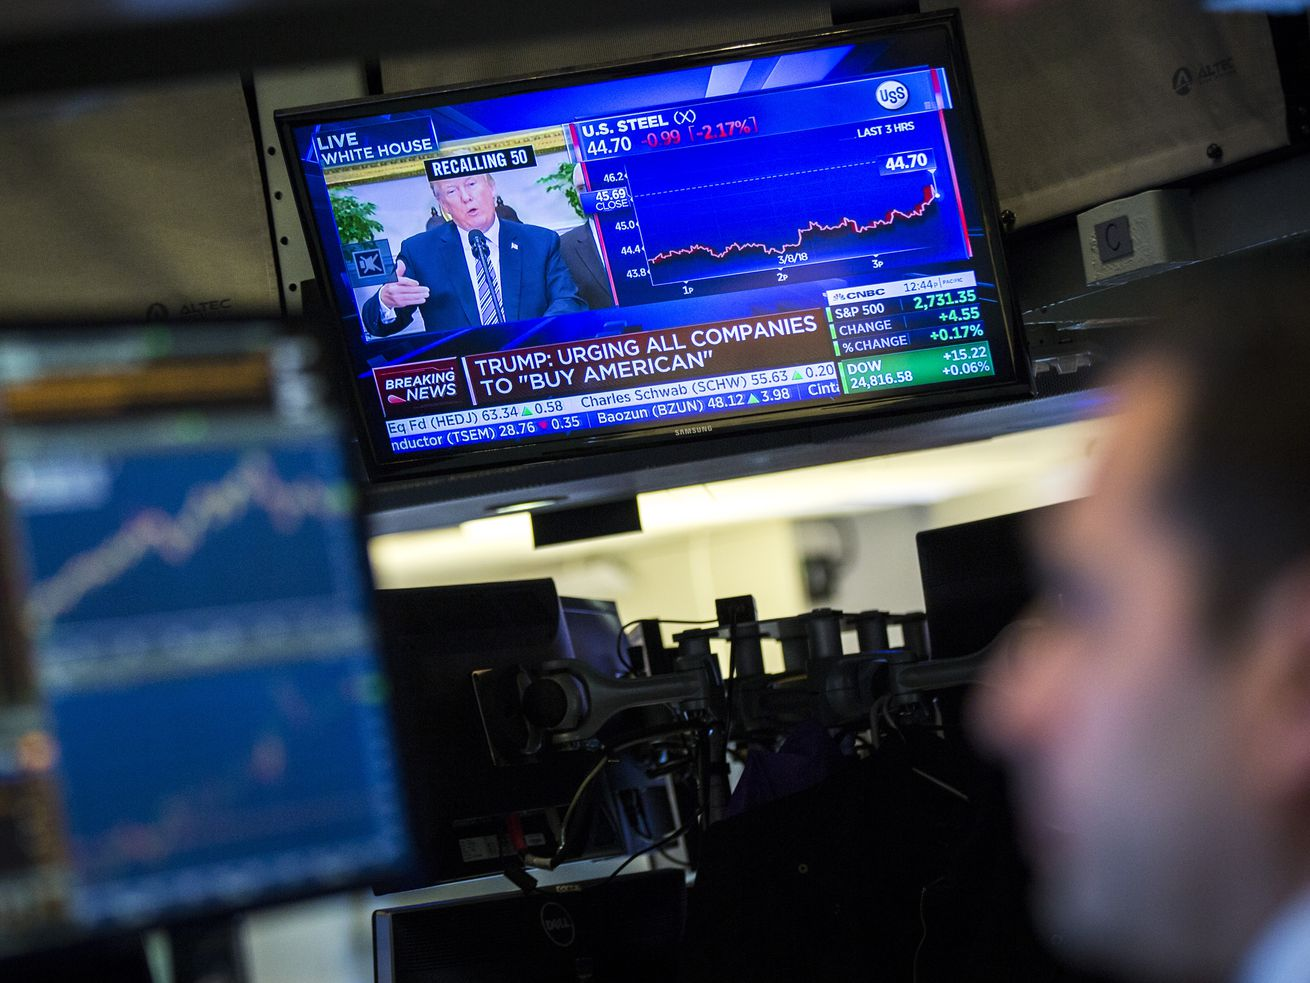 President Donald Trump is displayed on a television monitor as a trader works on the floor of the New York Stock Exchange ahead of the closing bell on March 8, 2018 in New York City.